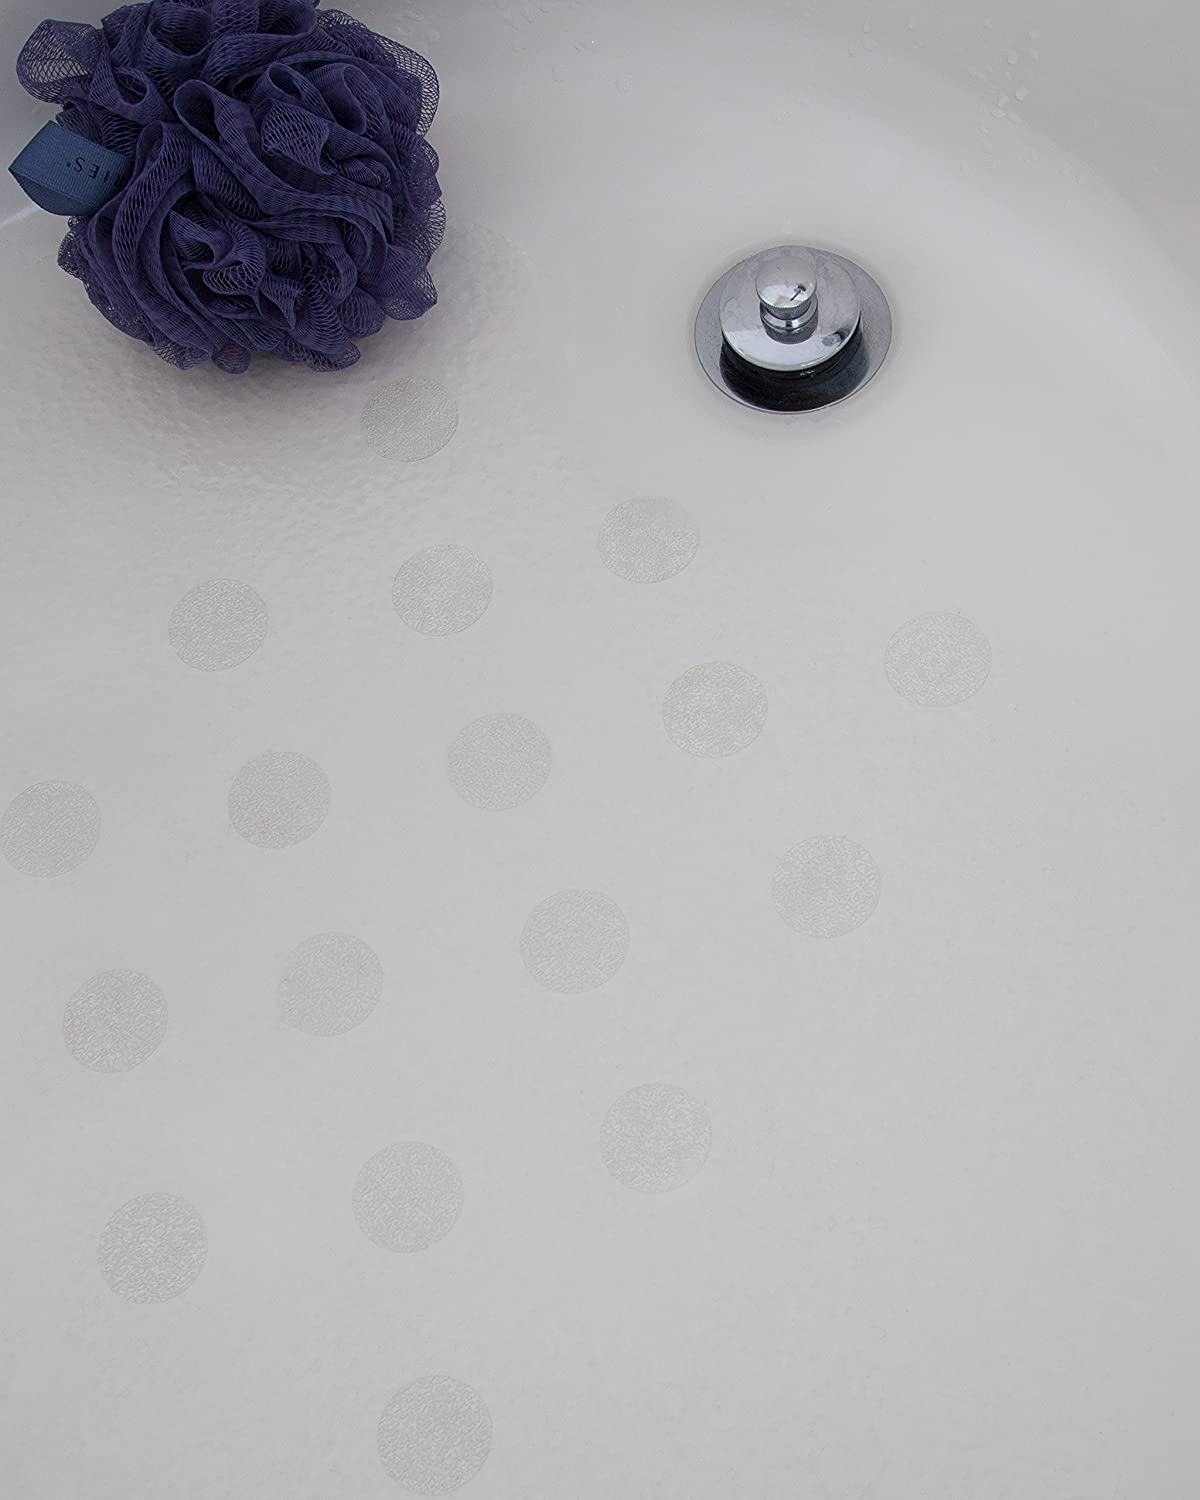 Amazon.com: Anti-slip Discs - Non Slip Stickers for Tubs and Showers ...